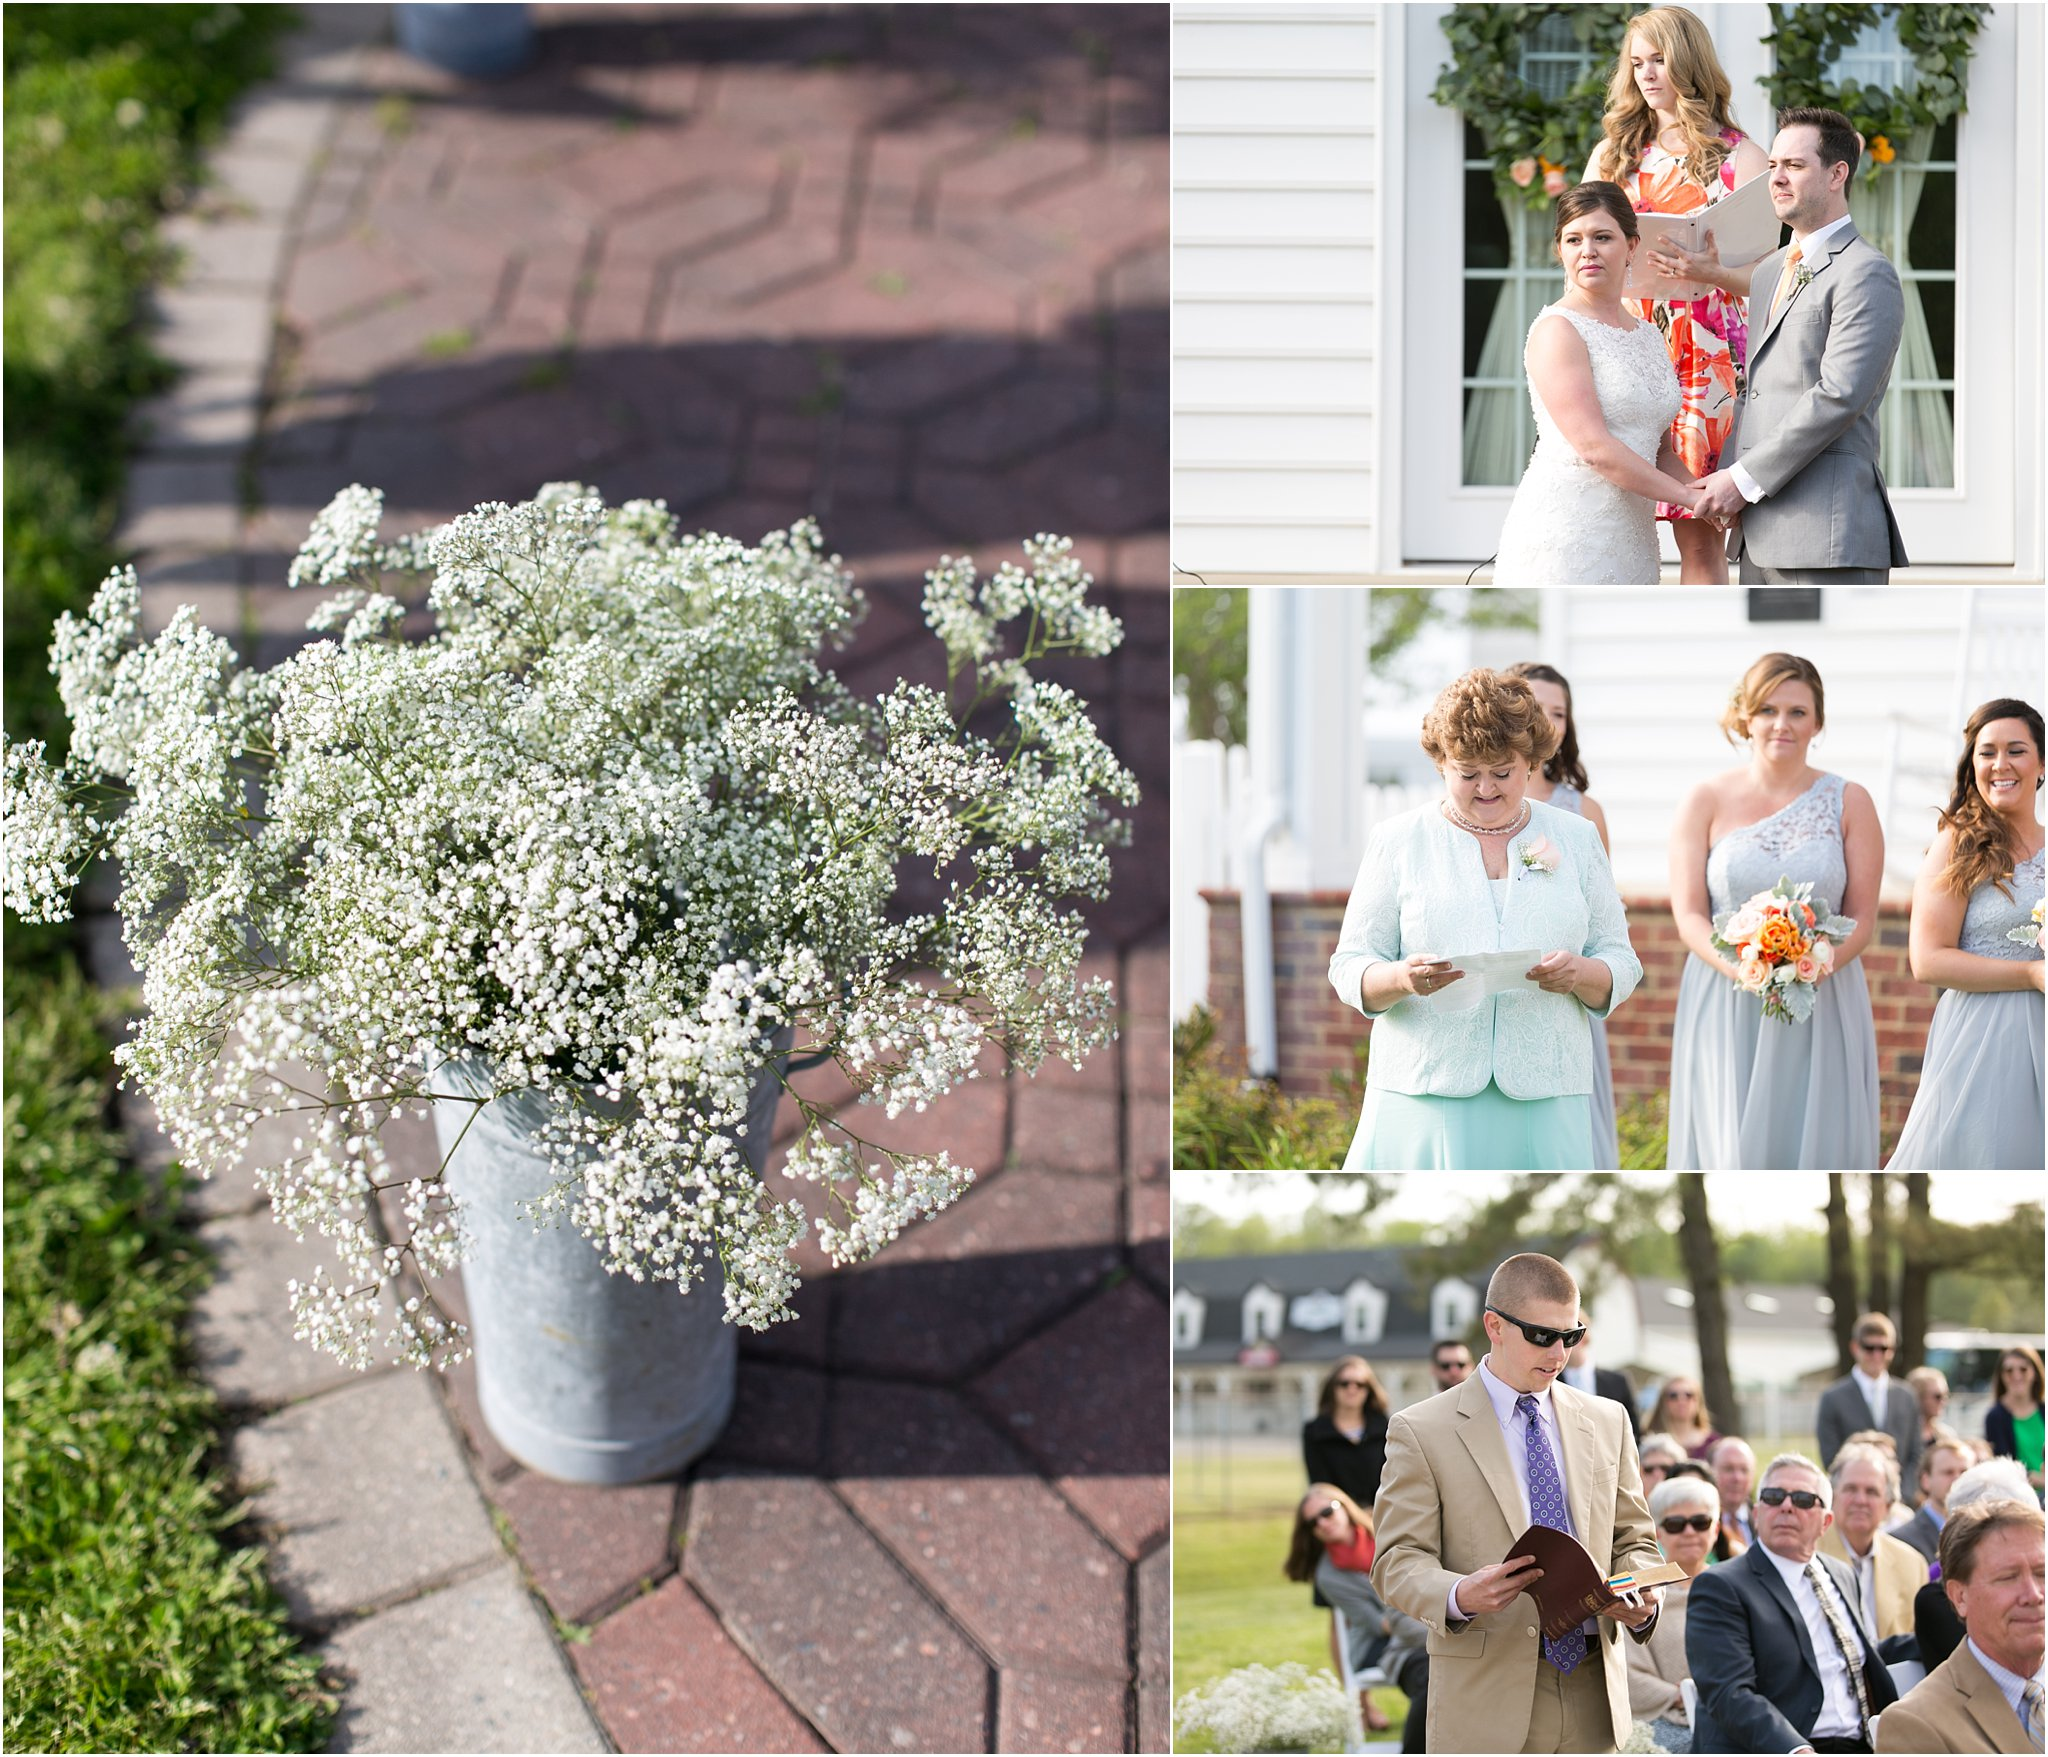 jessica_ryan_photography_holly_ridge_manor_wedding_roost_flowers_jamie_leigh_events_dhalia_edwards_candid_vibrant_wedding_colors_1295